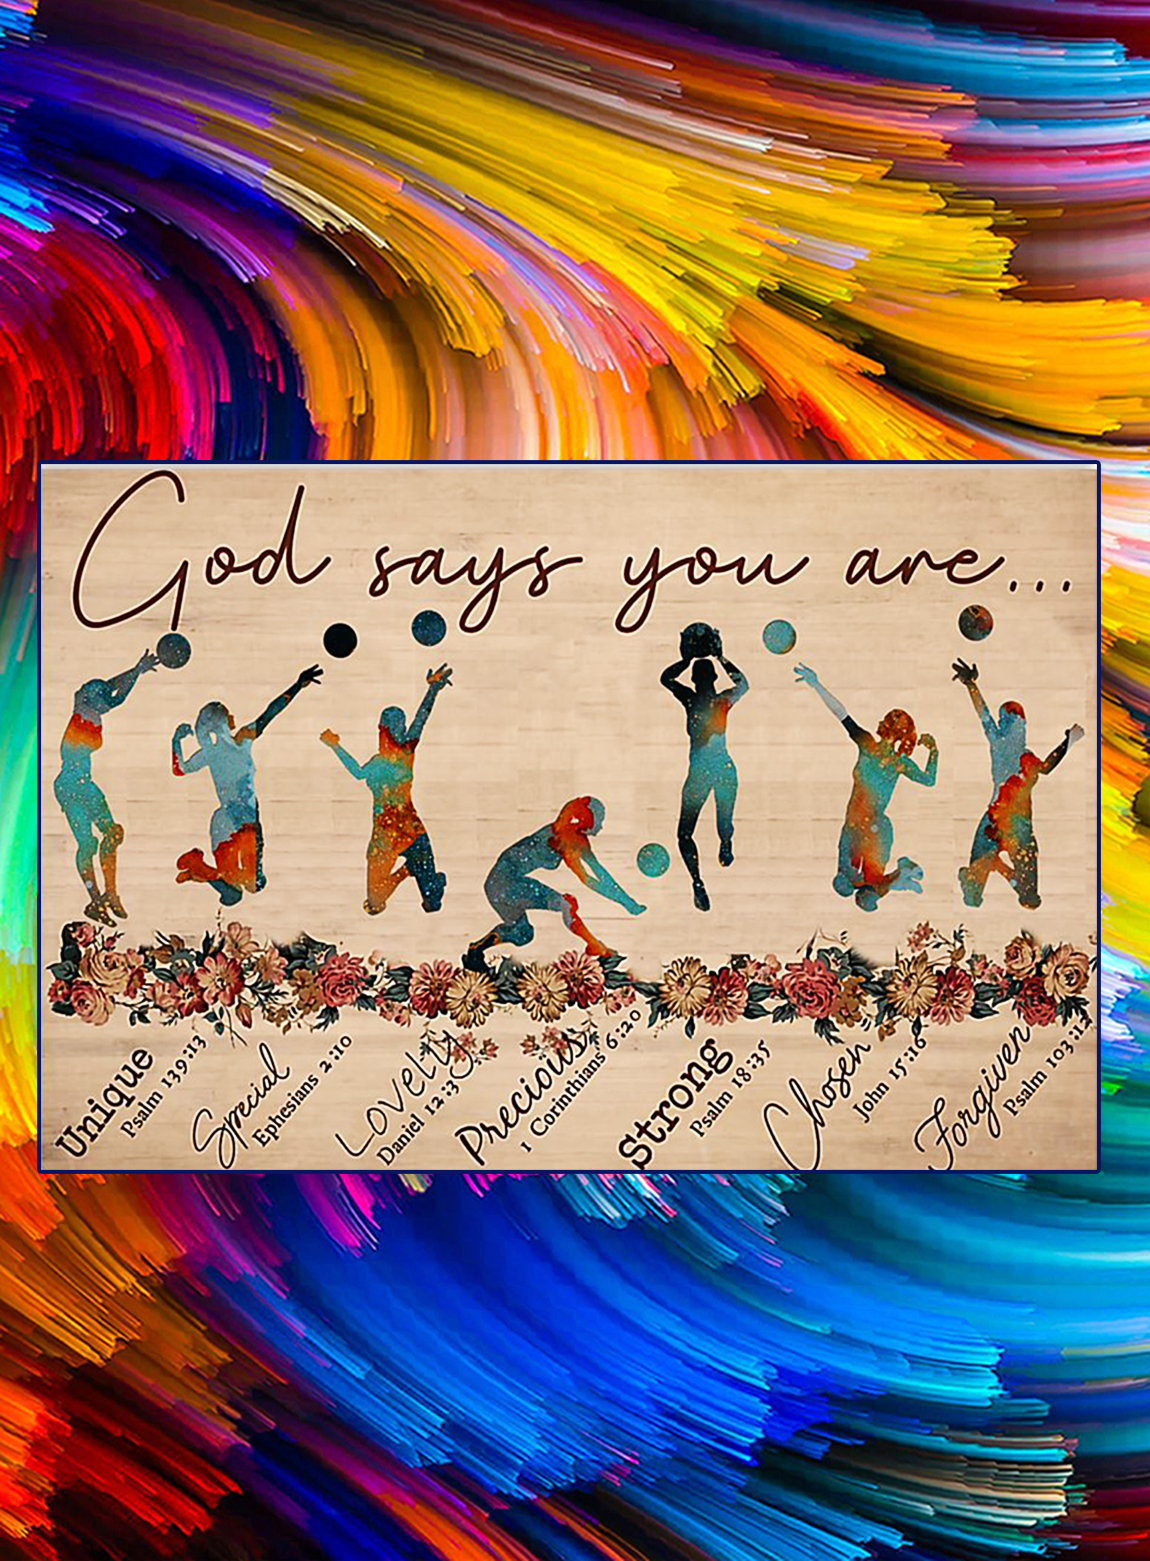 God says you are voleyball poster - A3